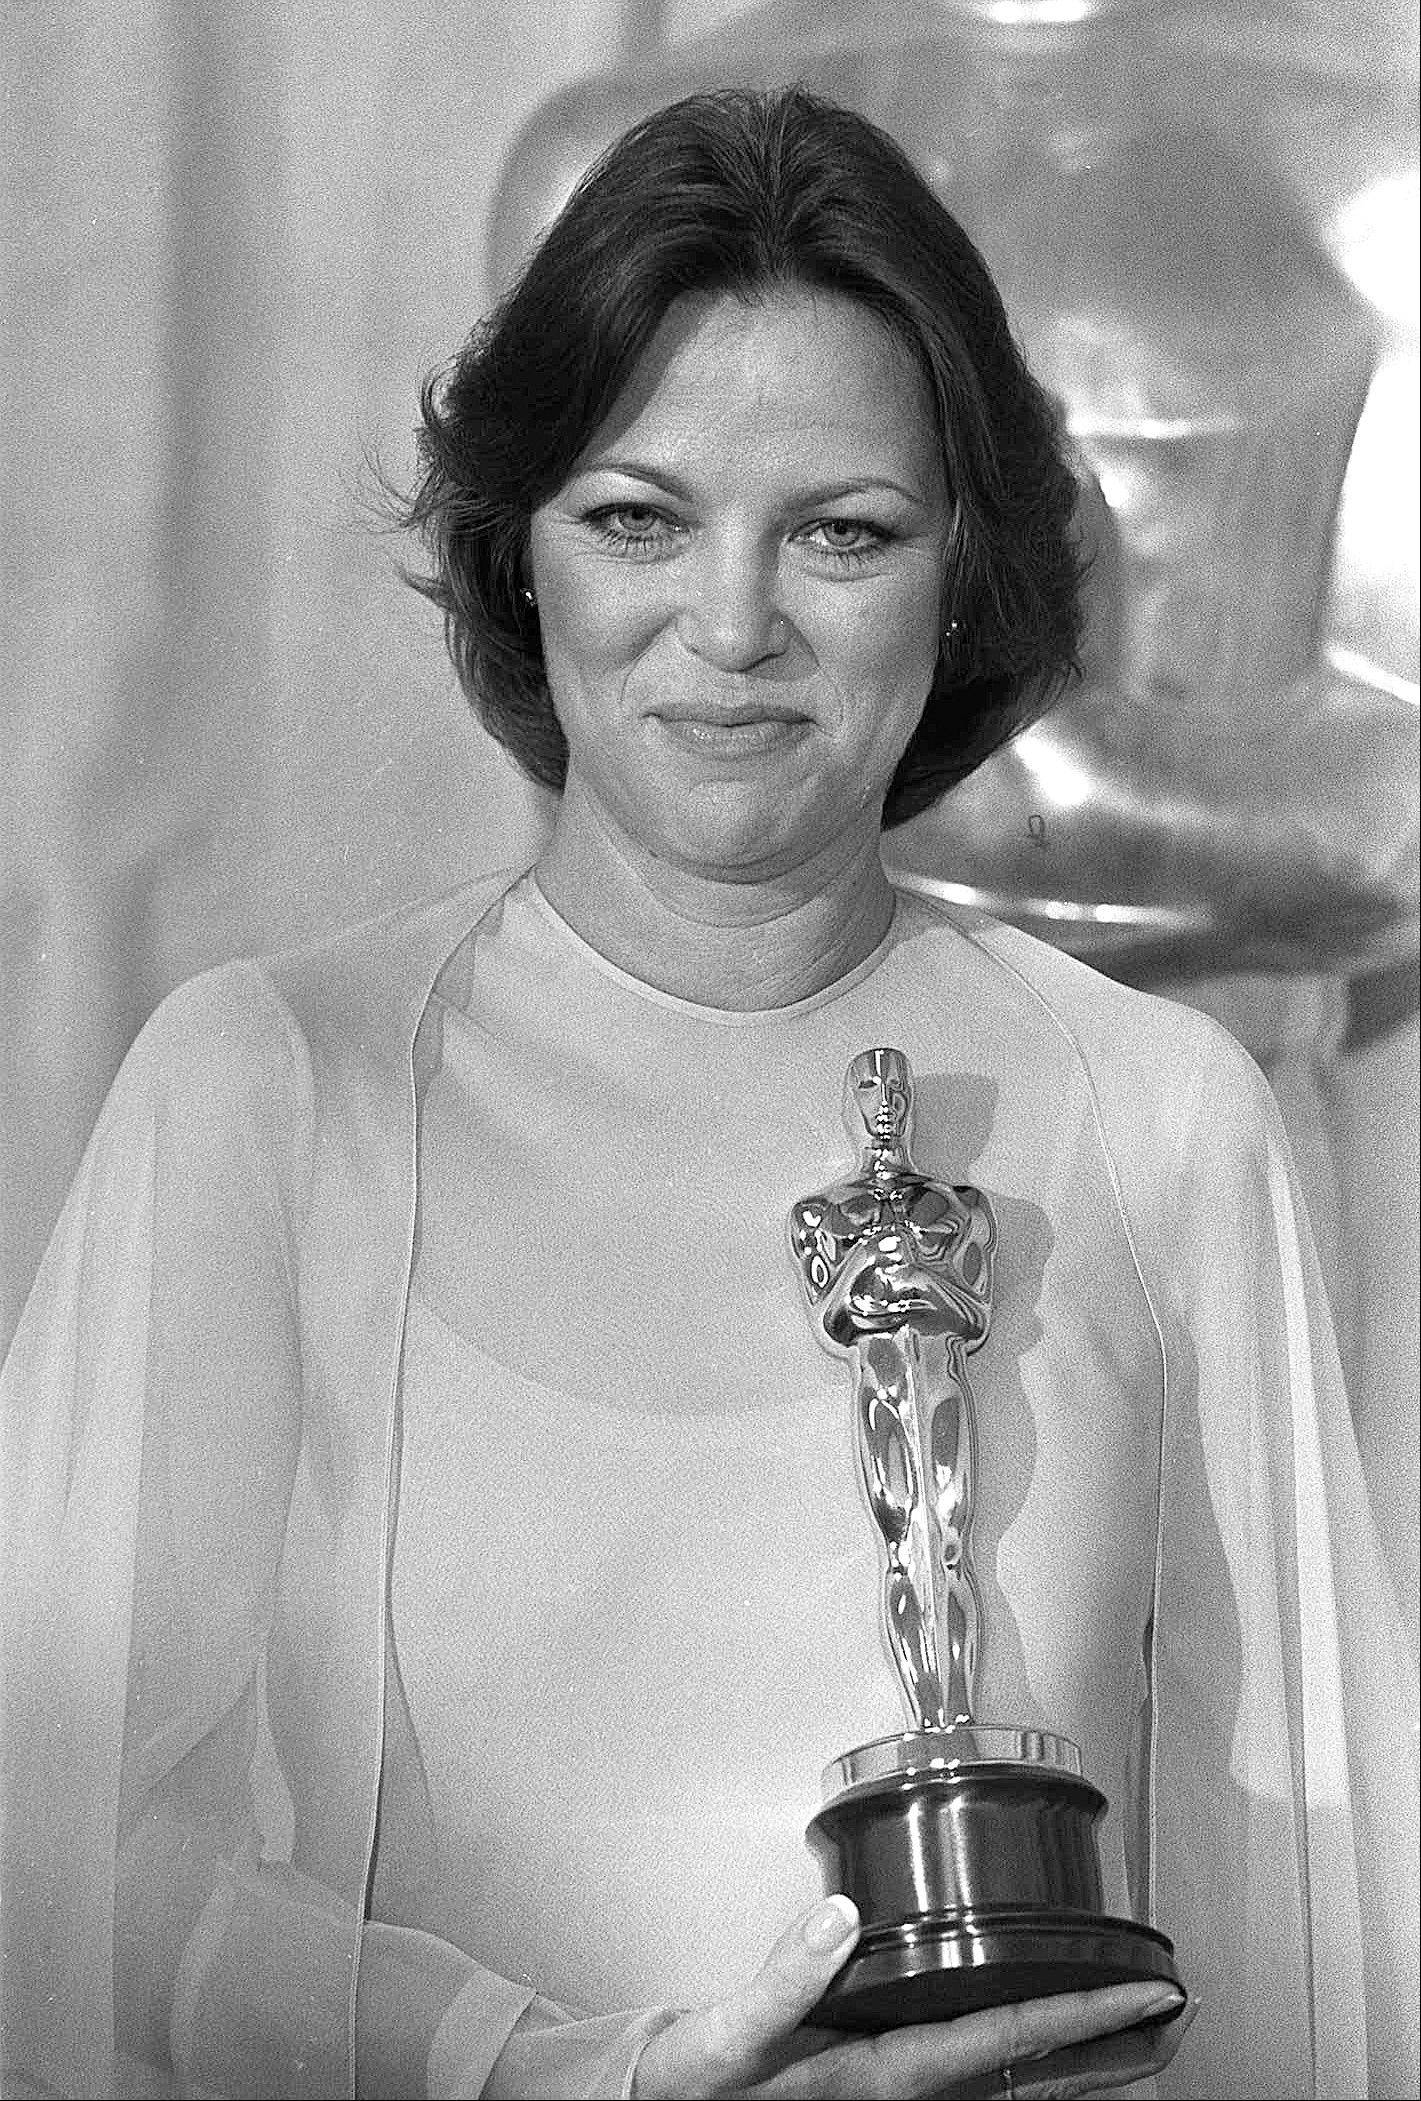 "In this March 29, 1976 file photo, actress Louise Fletcher holds the Oscar for ""Best Actress"" which she won for her performance in ""One Flew Over The Cuckoo's Nest"" at the Academy Awards in Los Angeles. Fletcher says she's no longer able to watch the movie ""One Flew Over the Cuckoo's Nest"" because the character she won an Oscar for, Nurse Ratched, is so cruel."